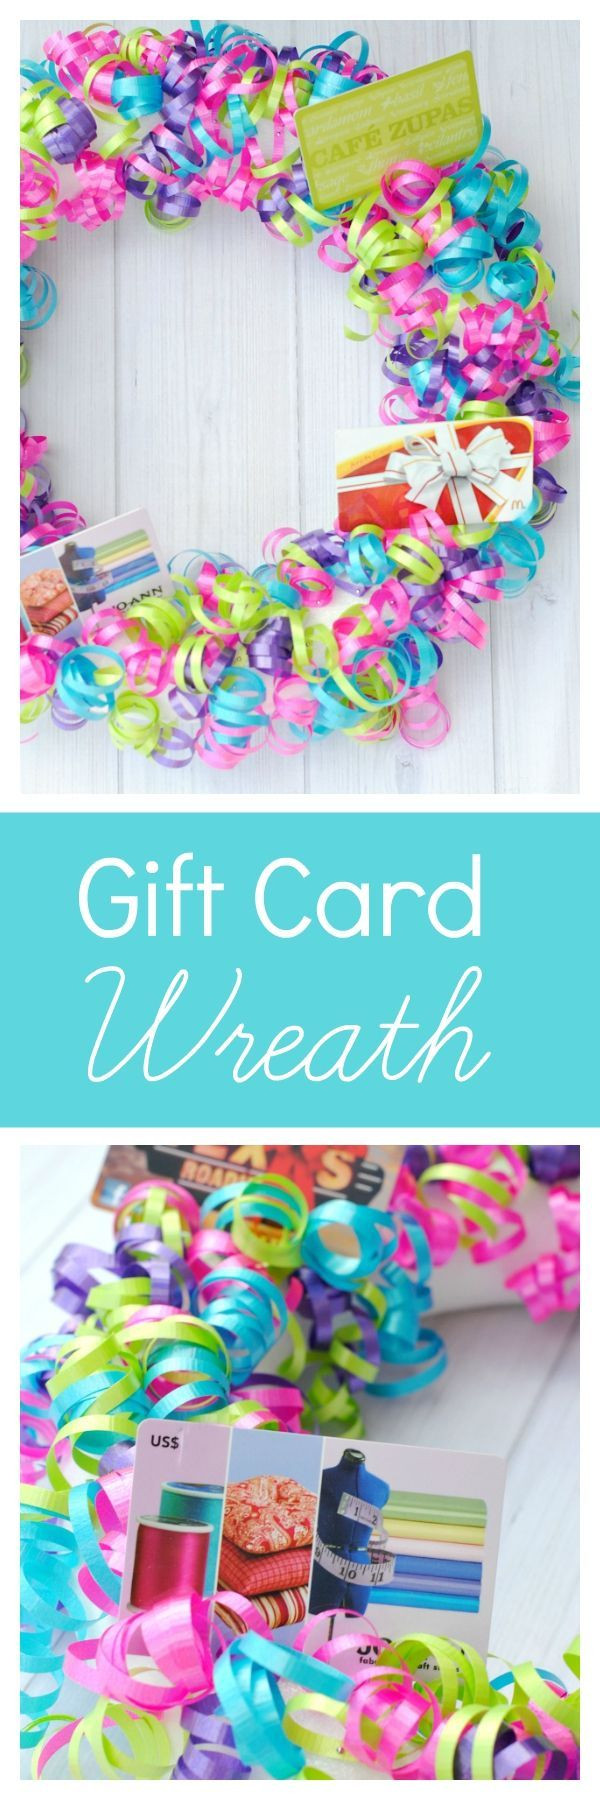 Best ideas about Gift Card Gift Ideas . Save or Pin Best 25 Gift card presentation ideas on Pinterest Now.